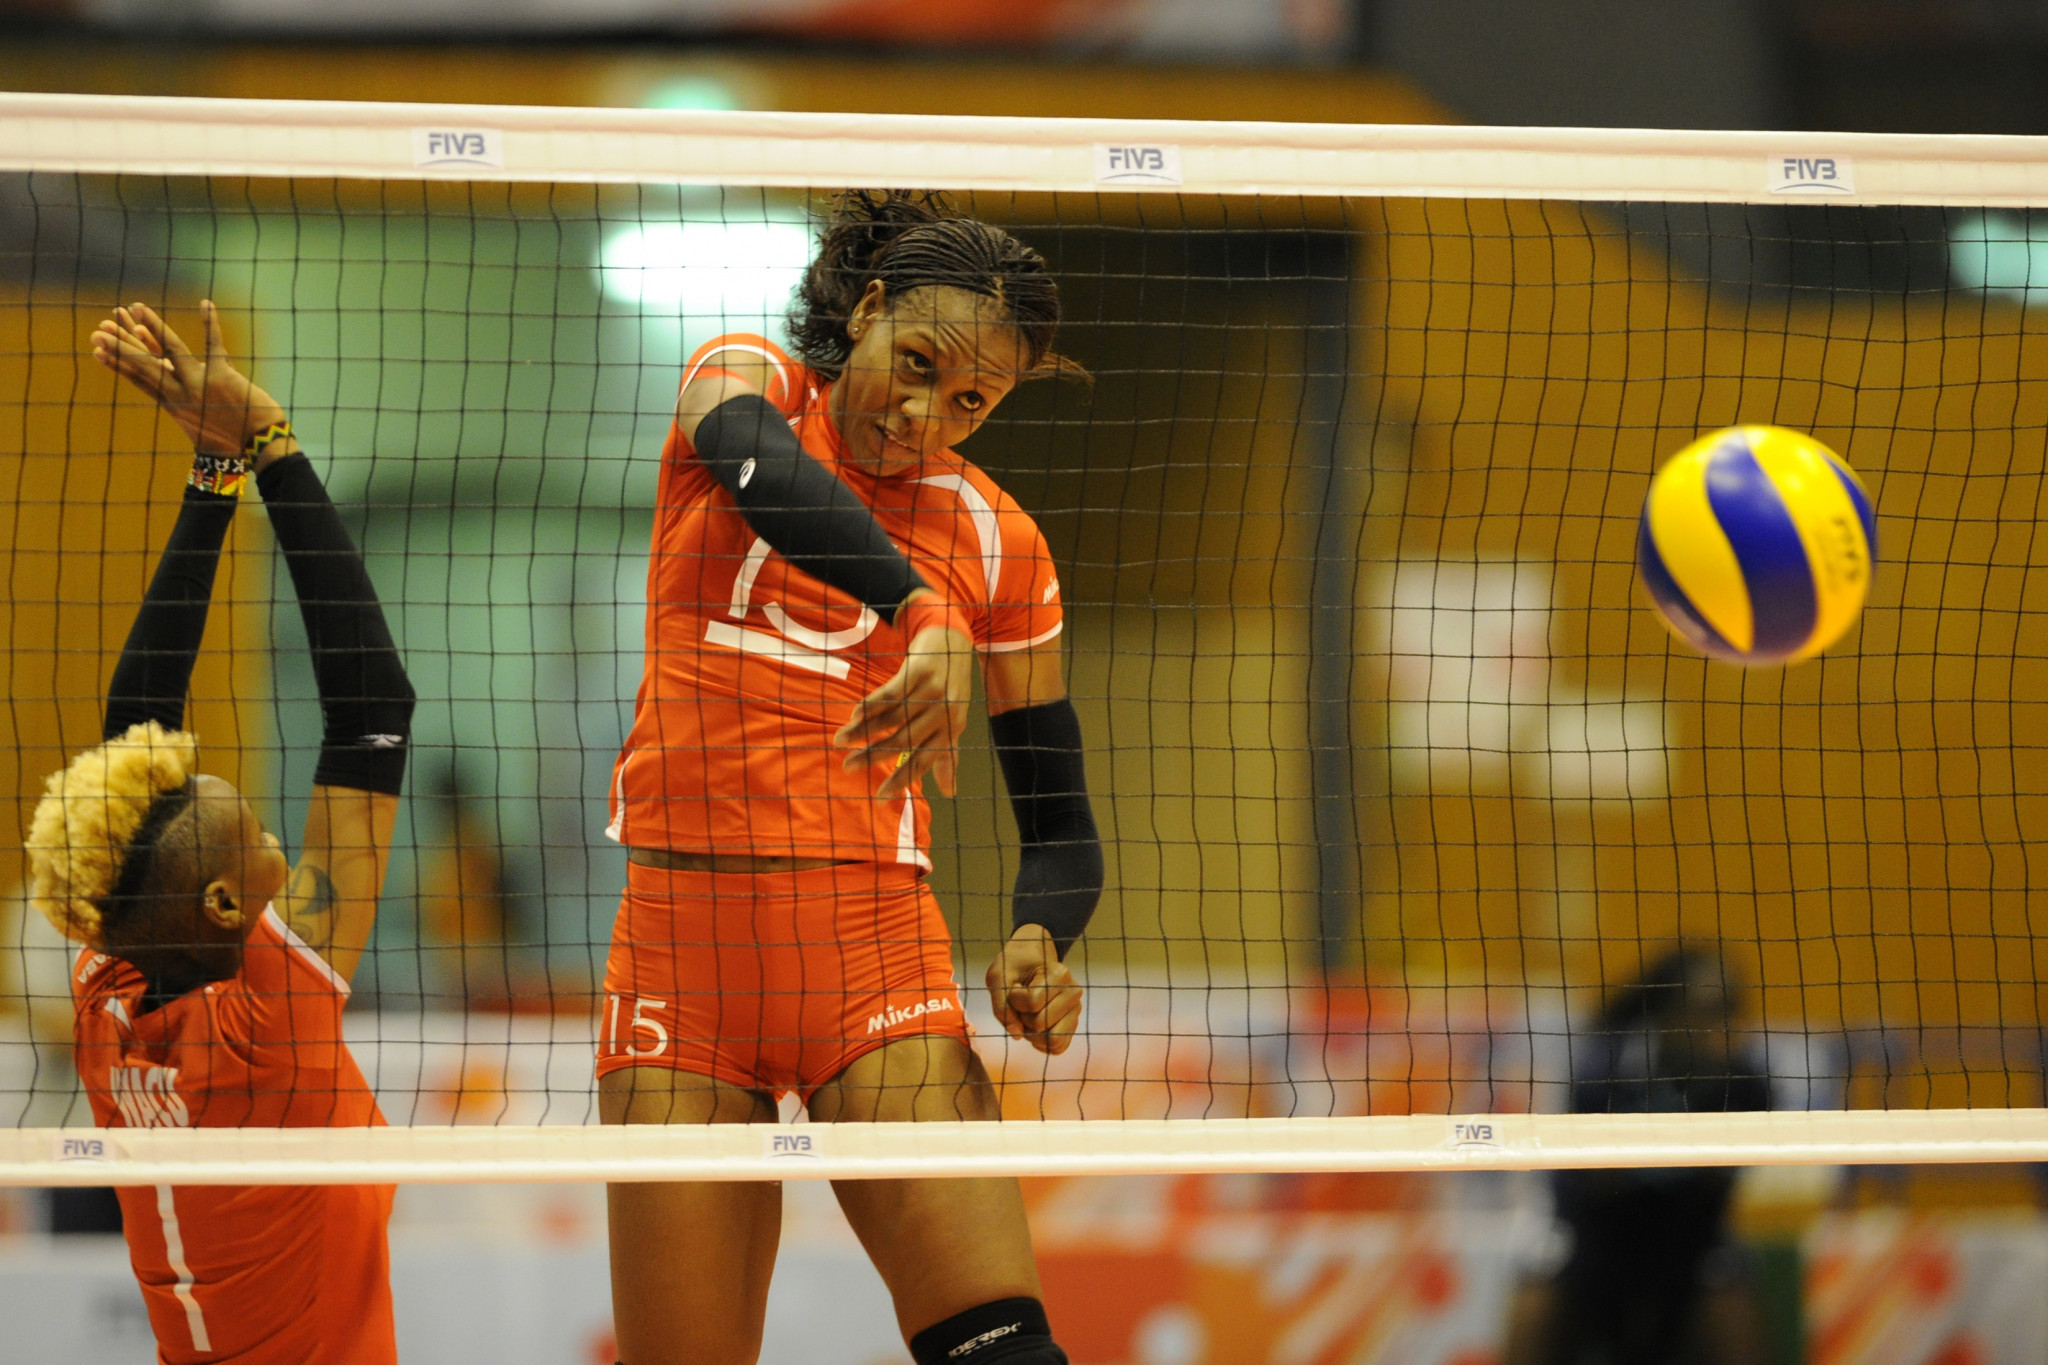 Kenya has appealed the decision from the CAVB ©Getty Images